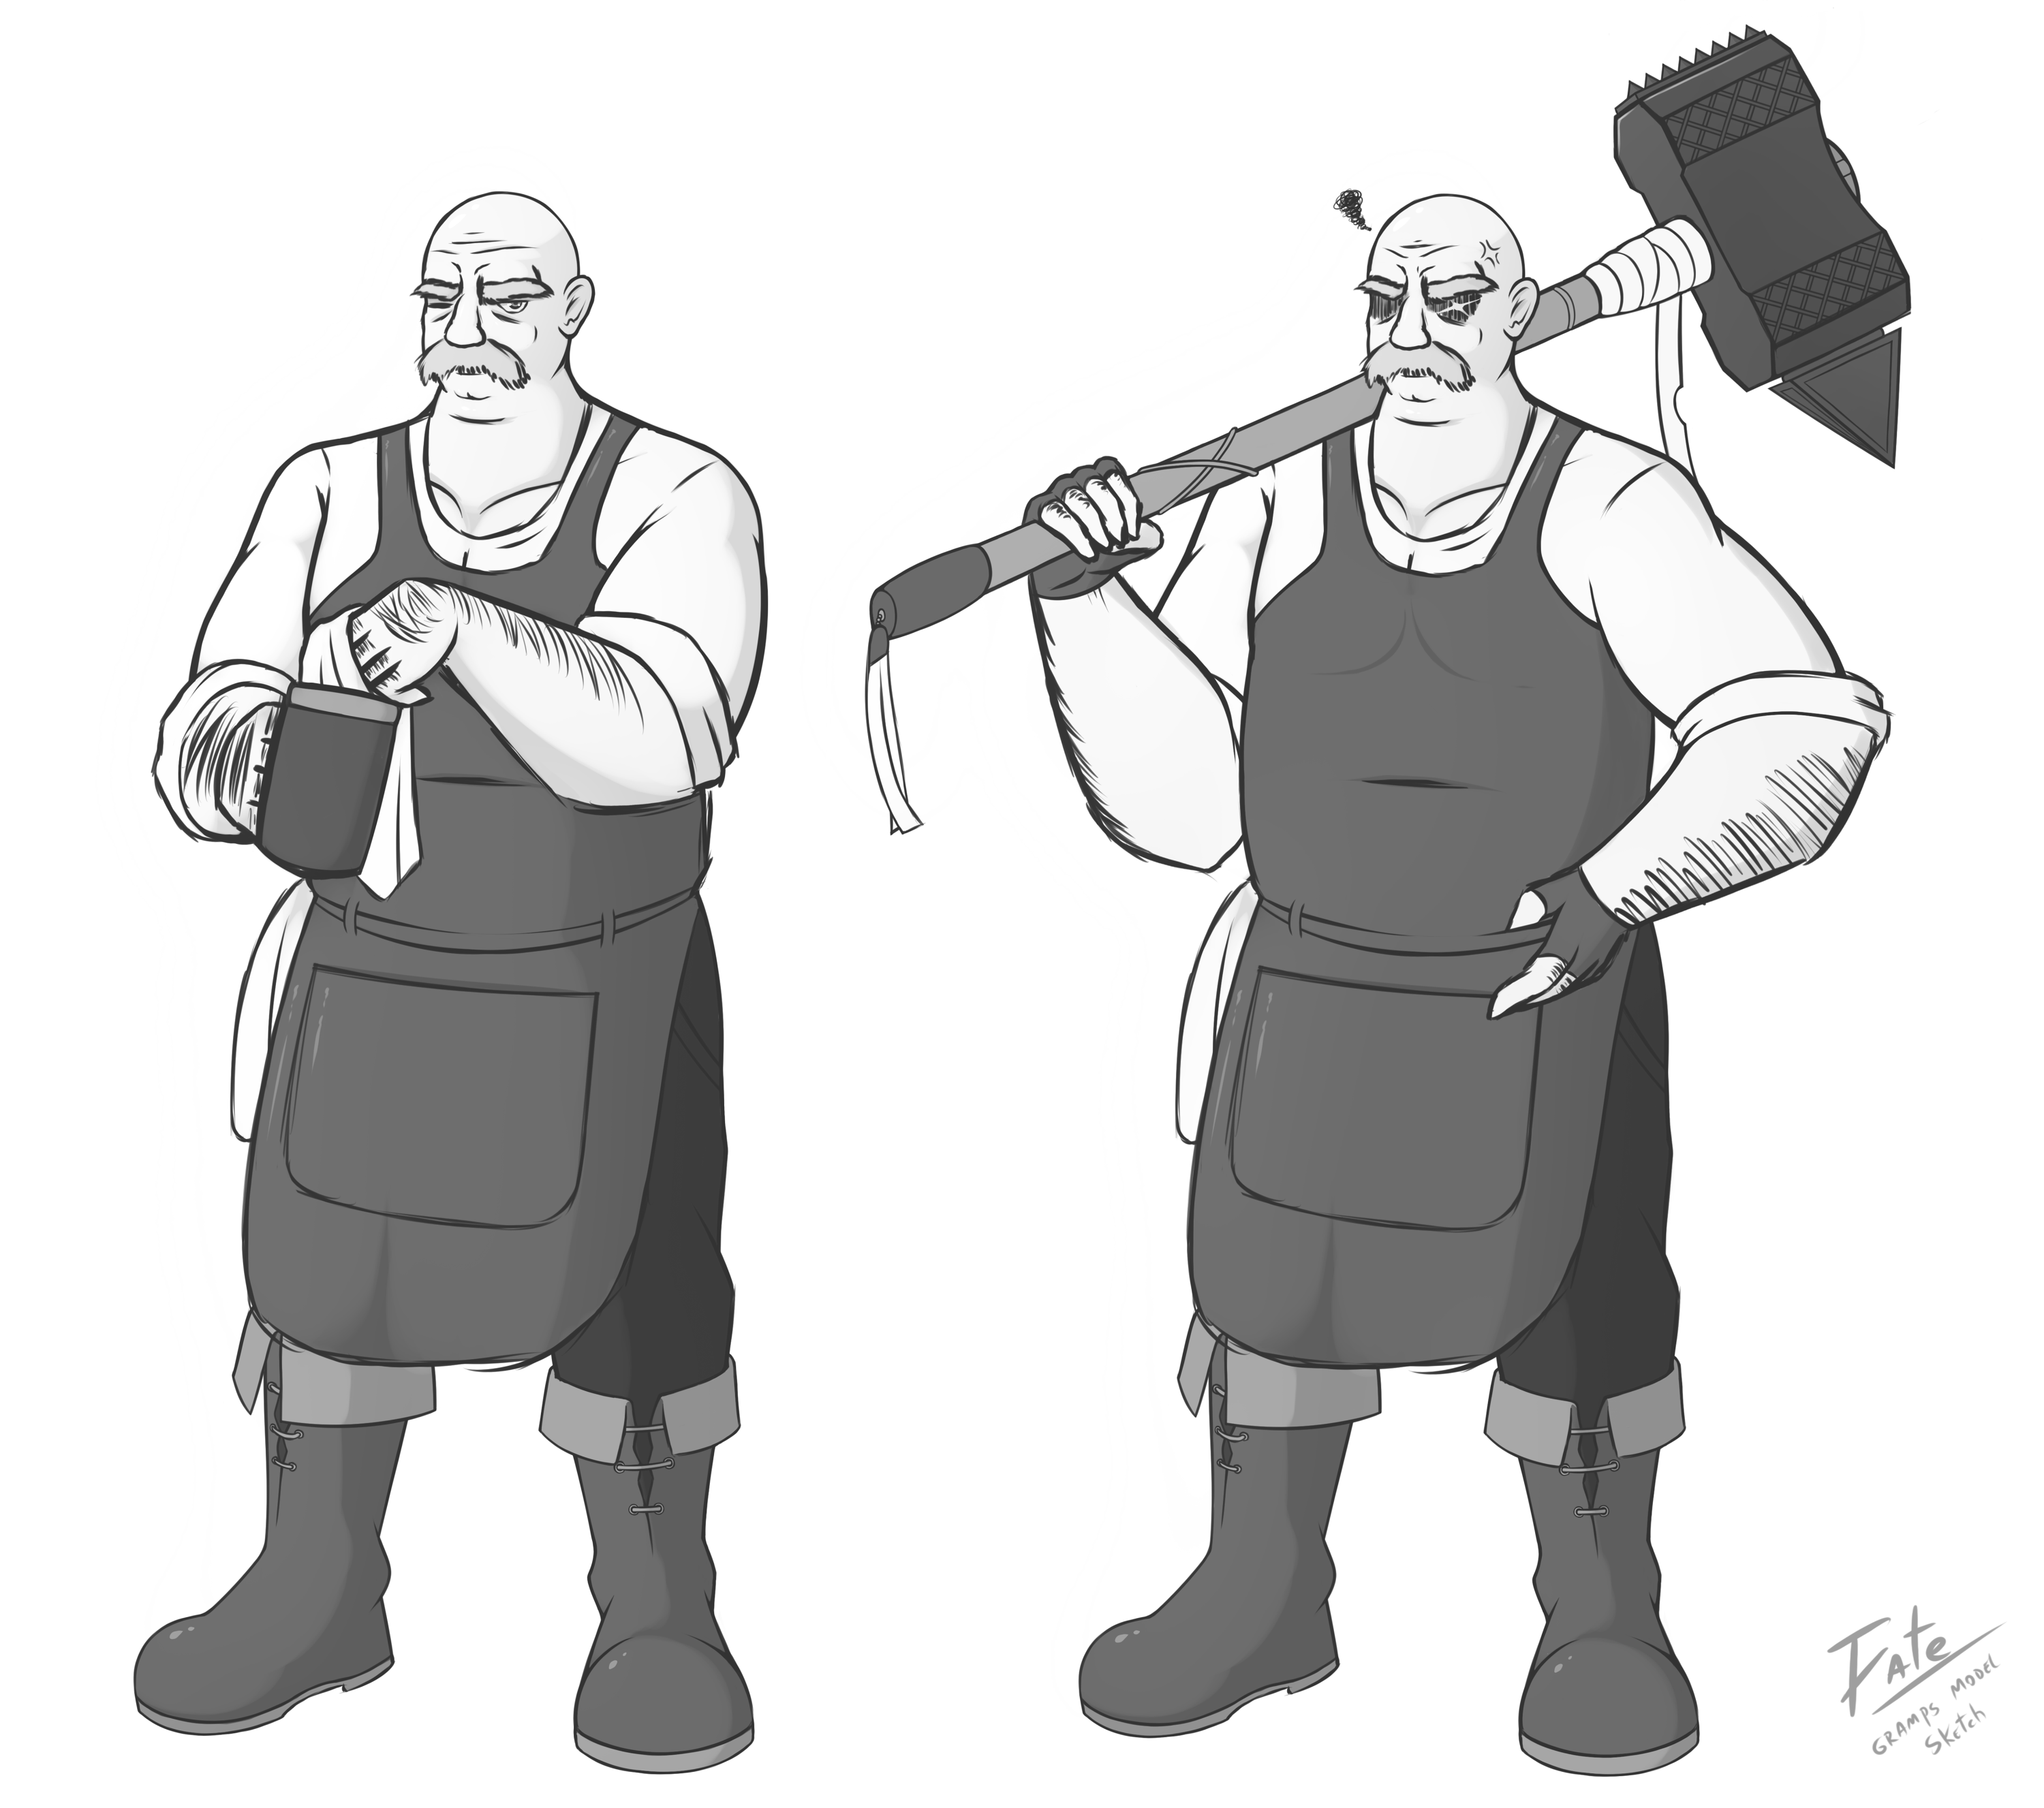 Gramps' Model Sketch (Tales of Faenia project)